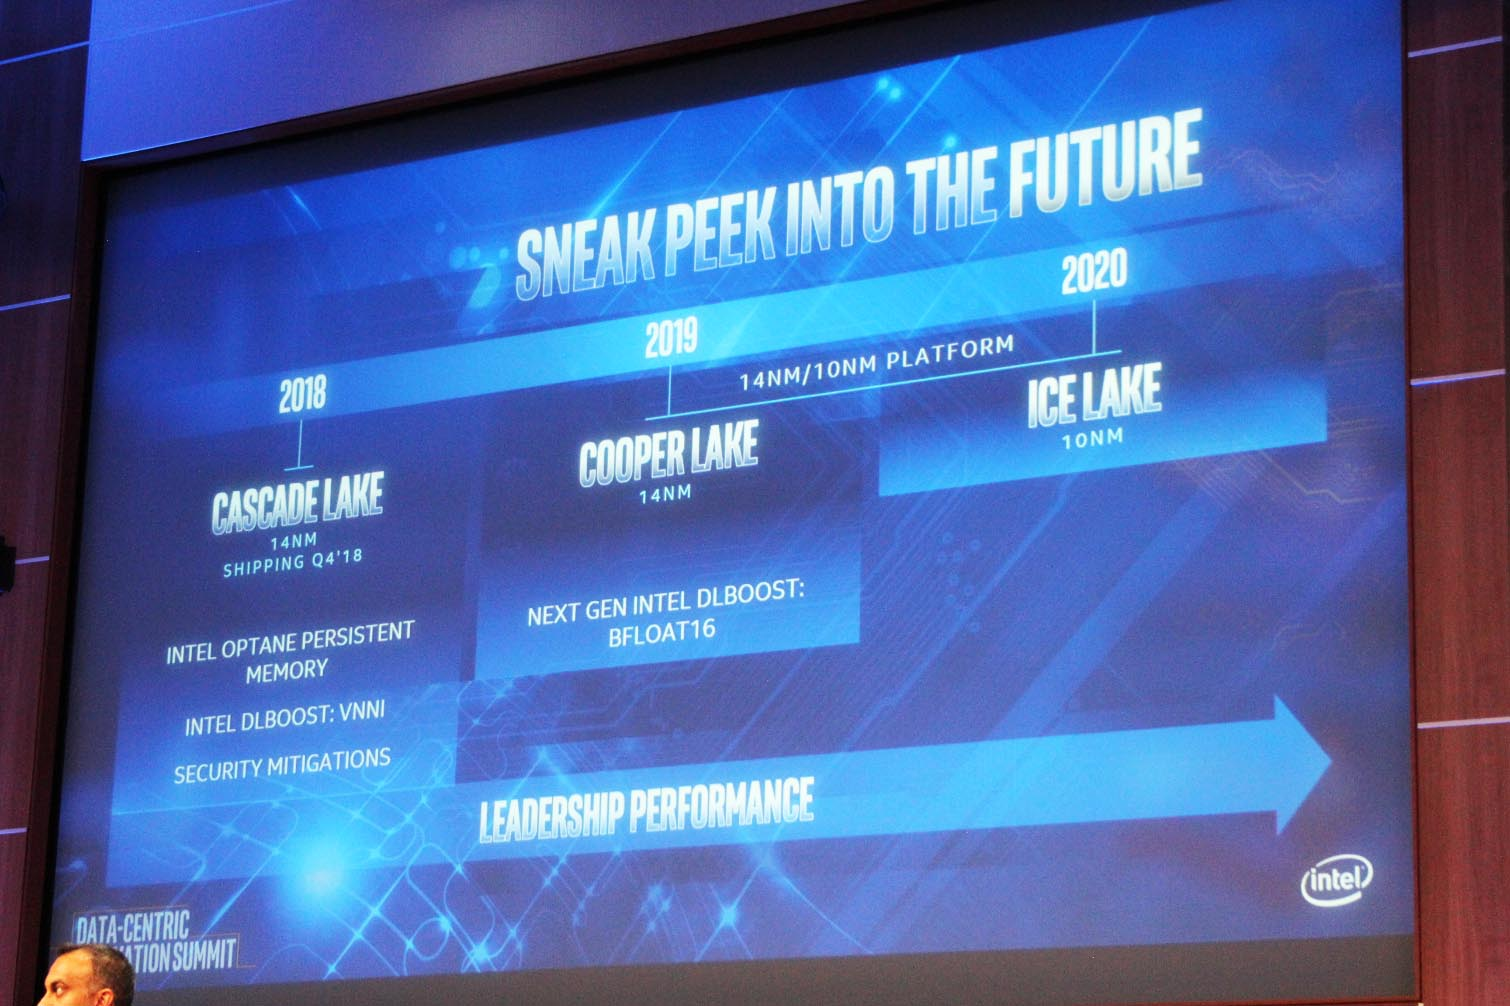 Intel Xeon roadmap 2020